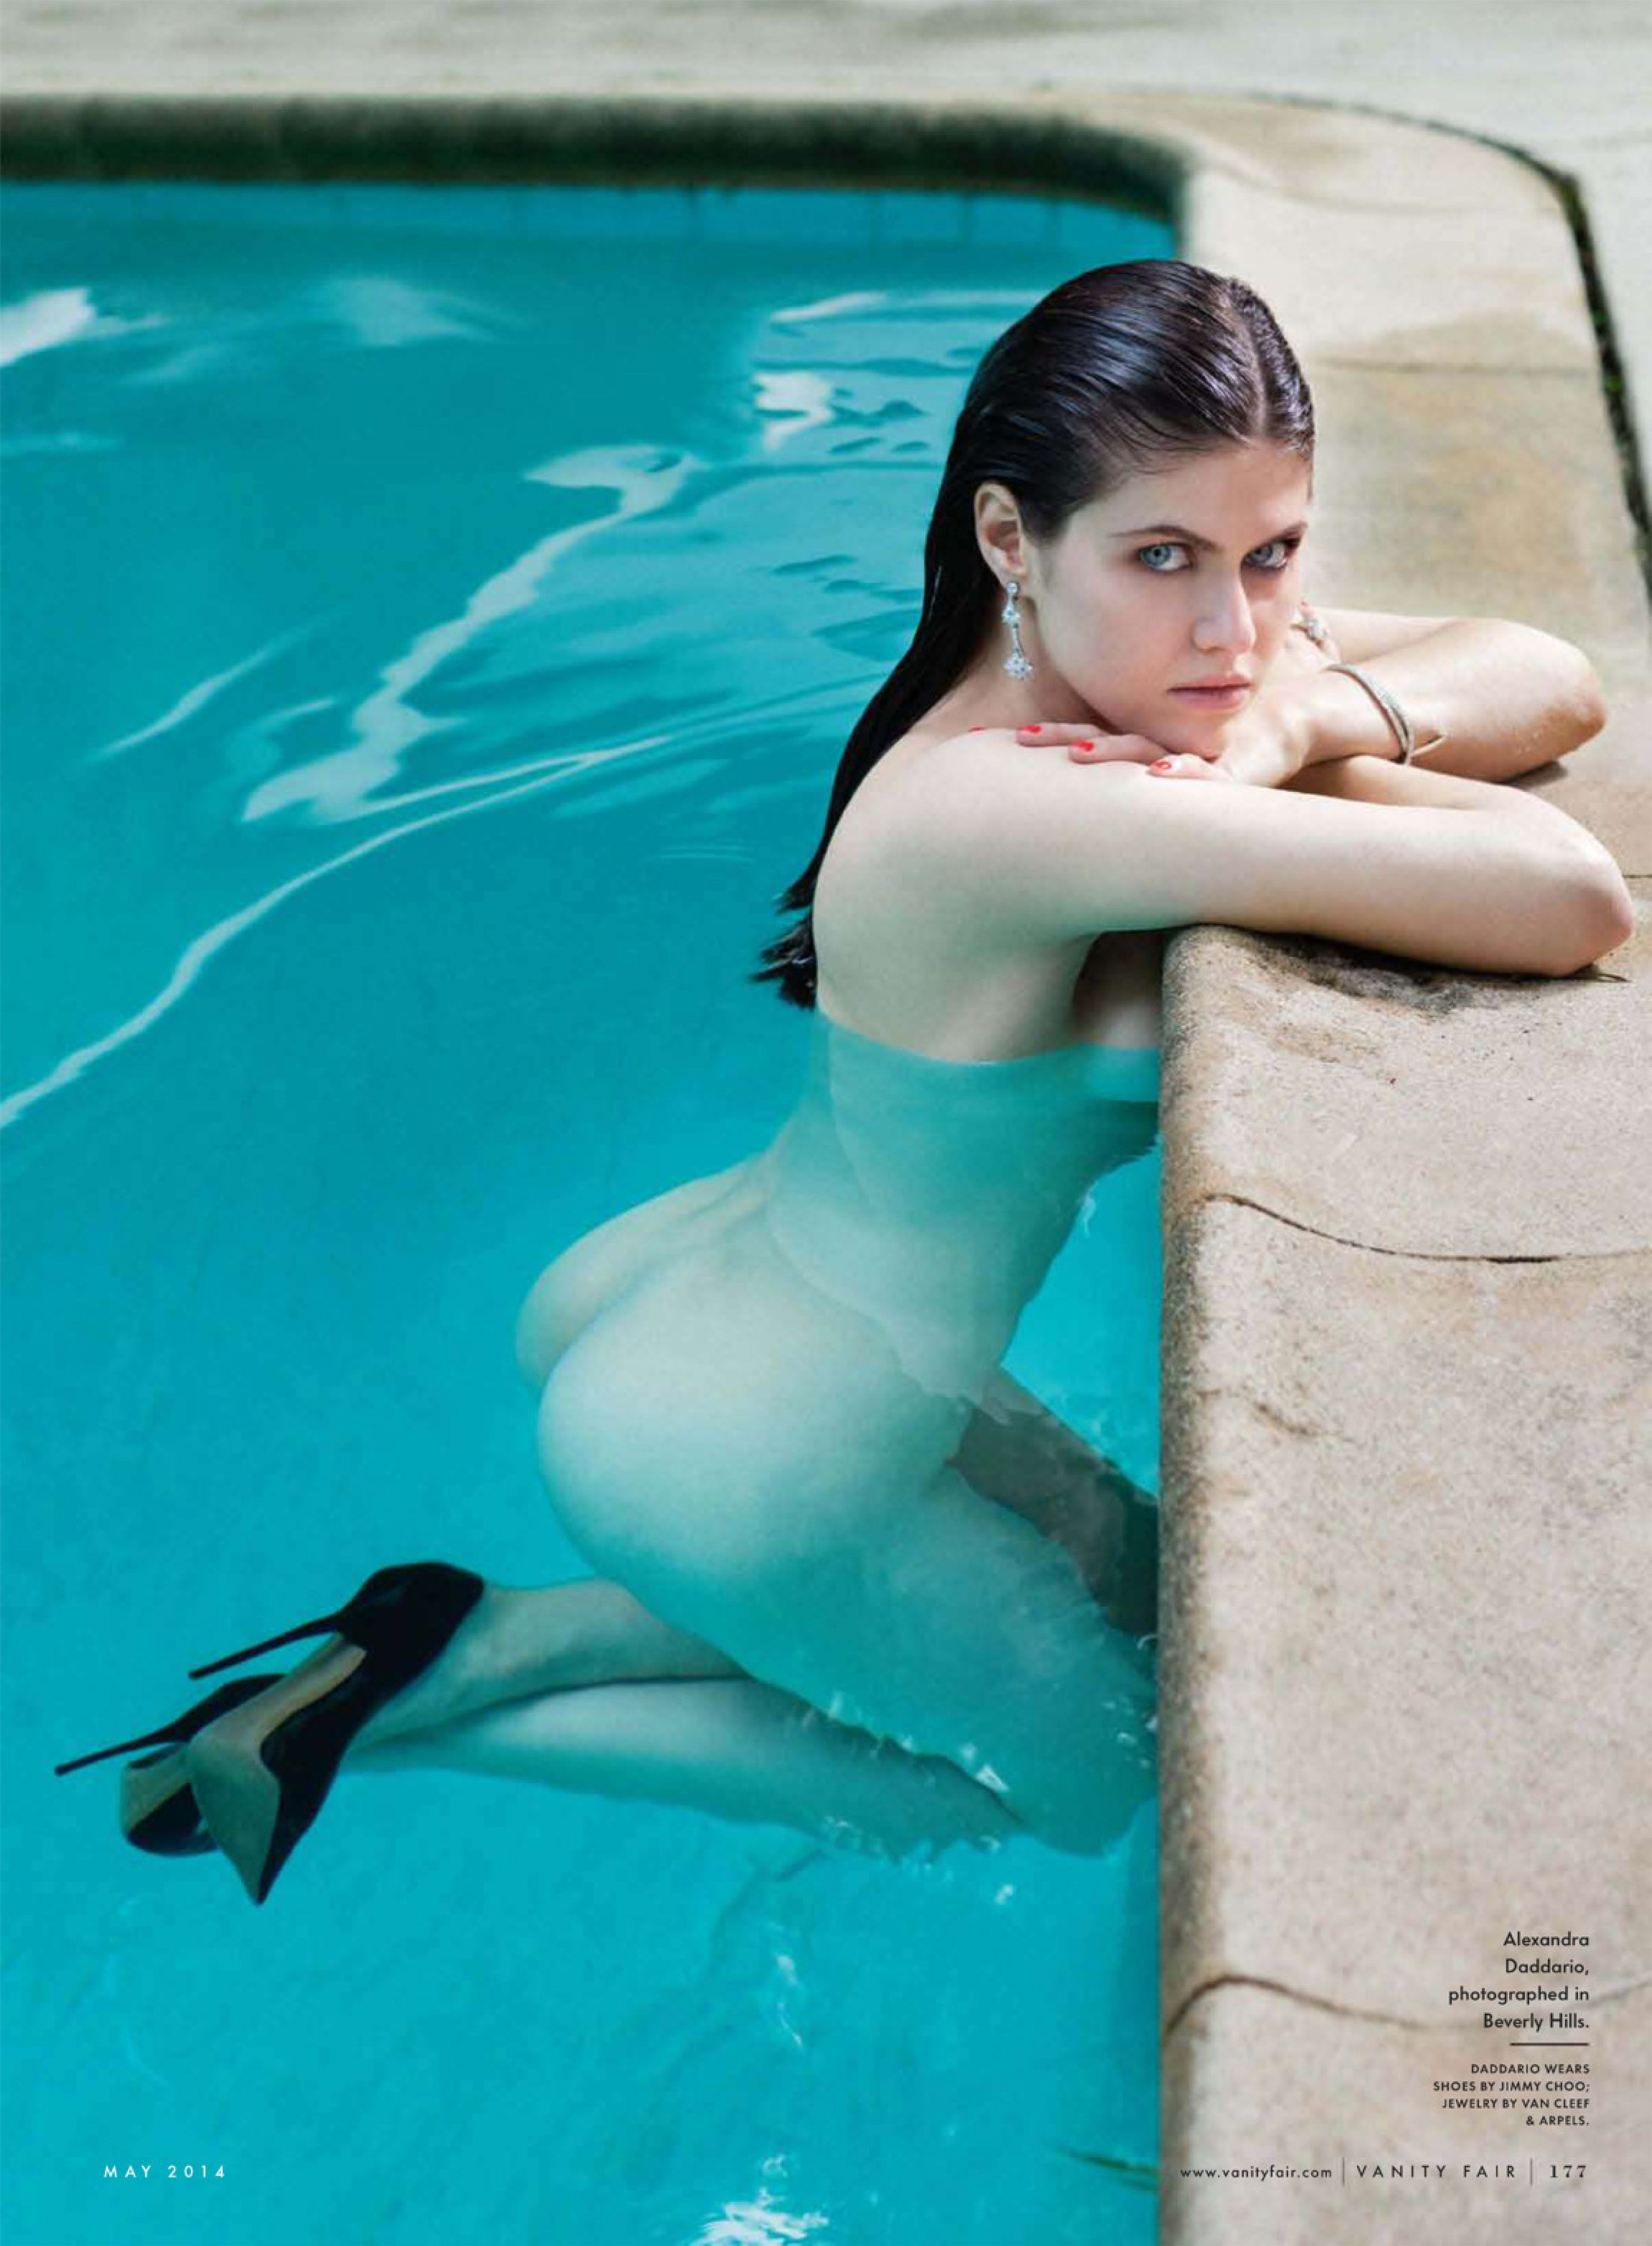 Picture tagged with: Alexandra Daddario, Brunette, Celebrity - Star, Pool